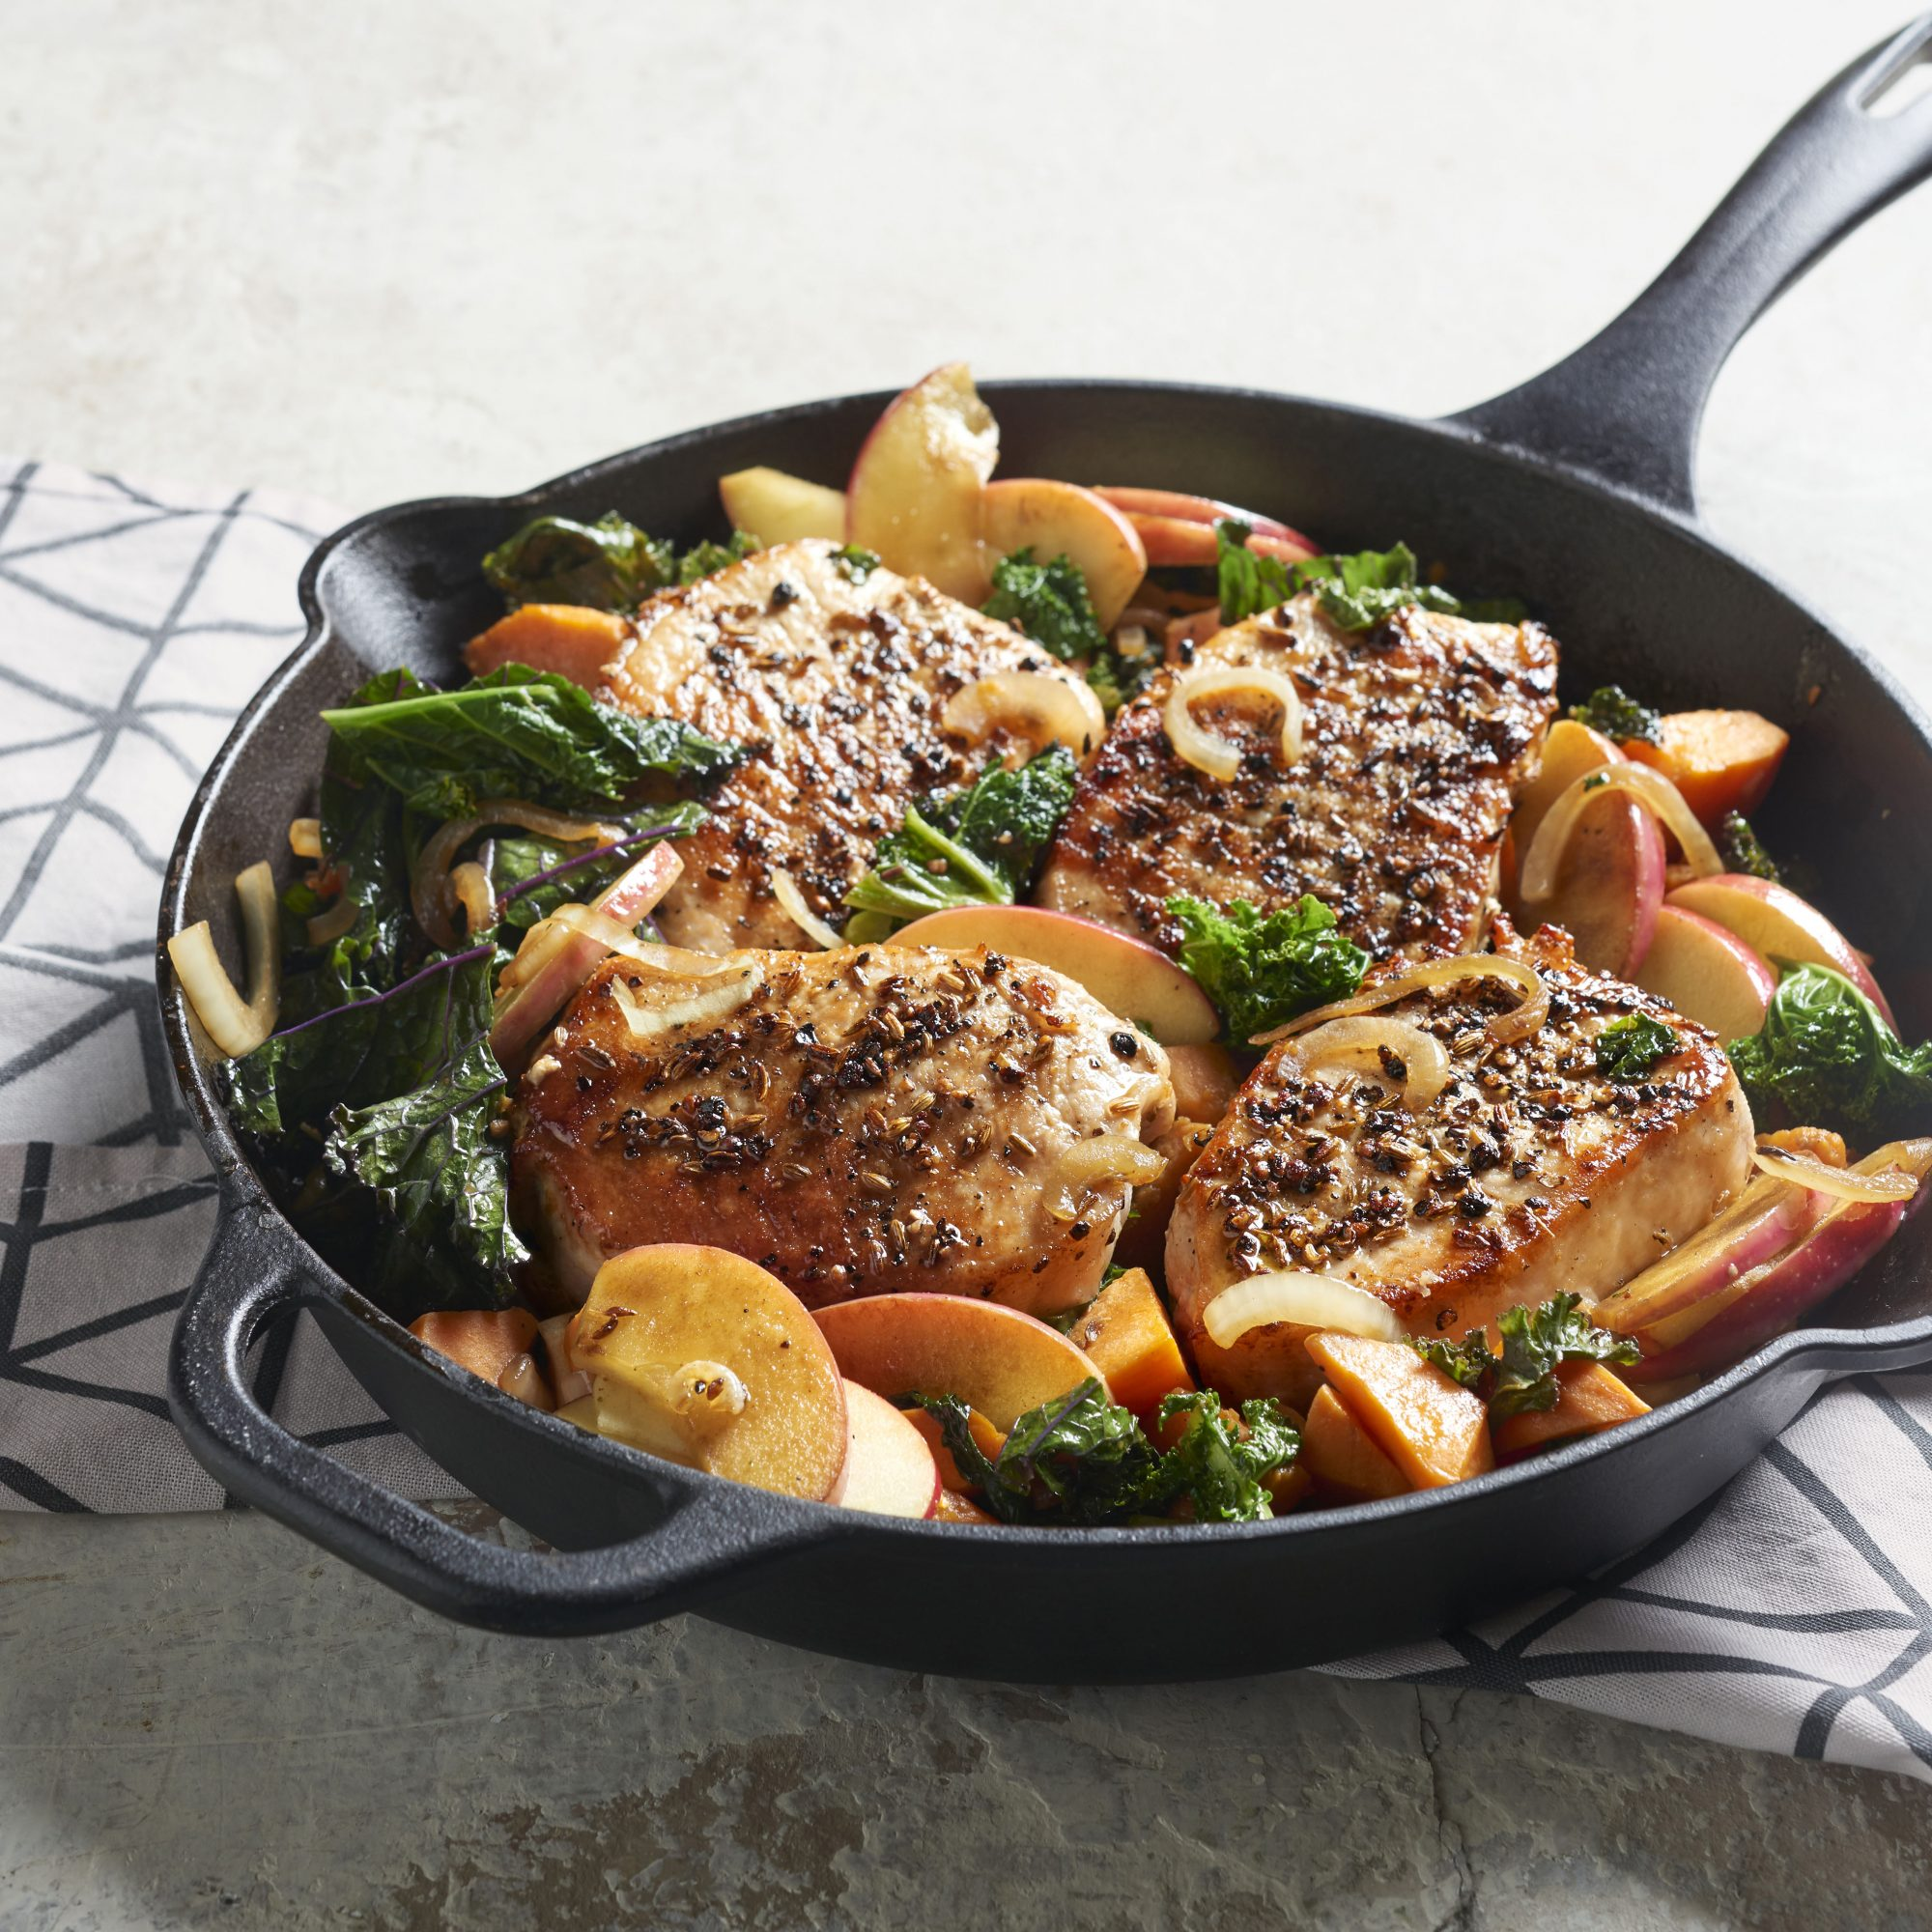 Fennel-Rubbed Pork Chops with Apple, Kale, and Sweet Potato